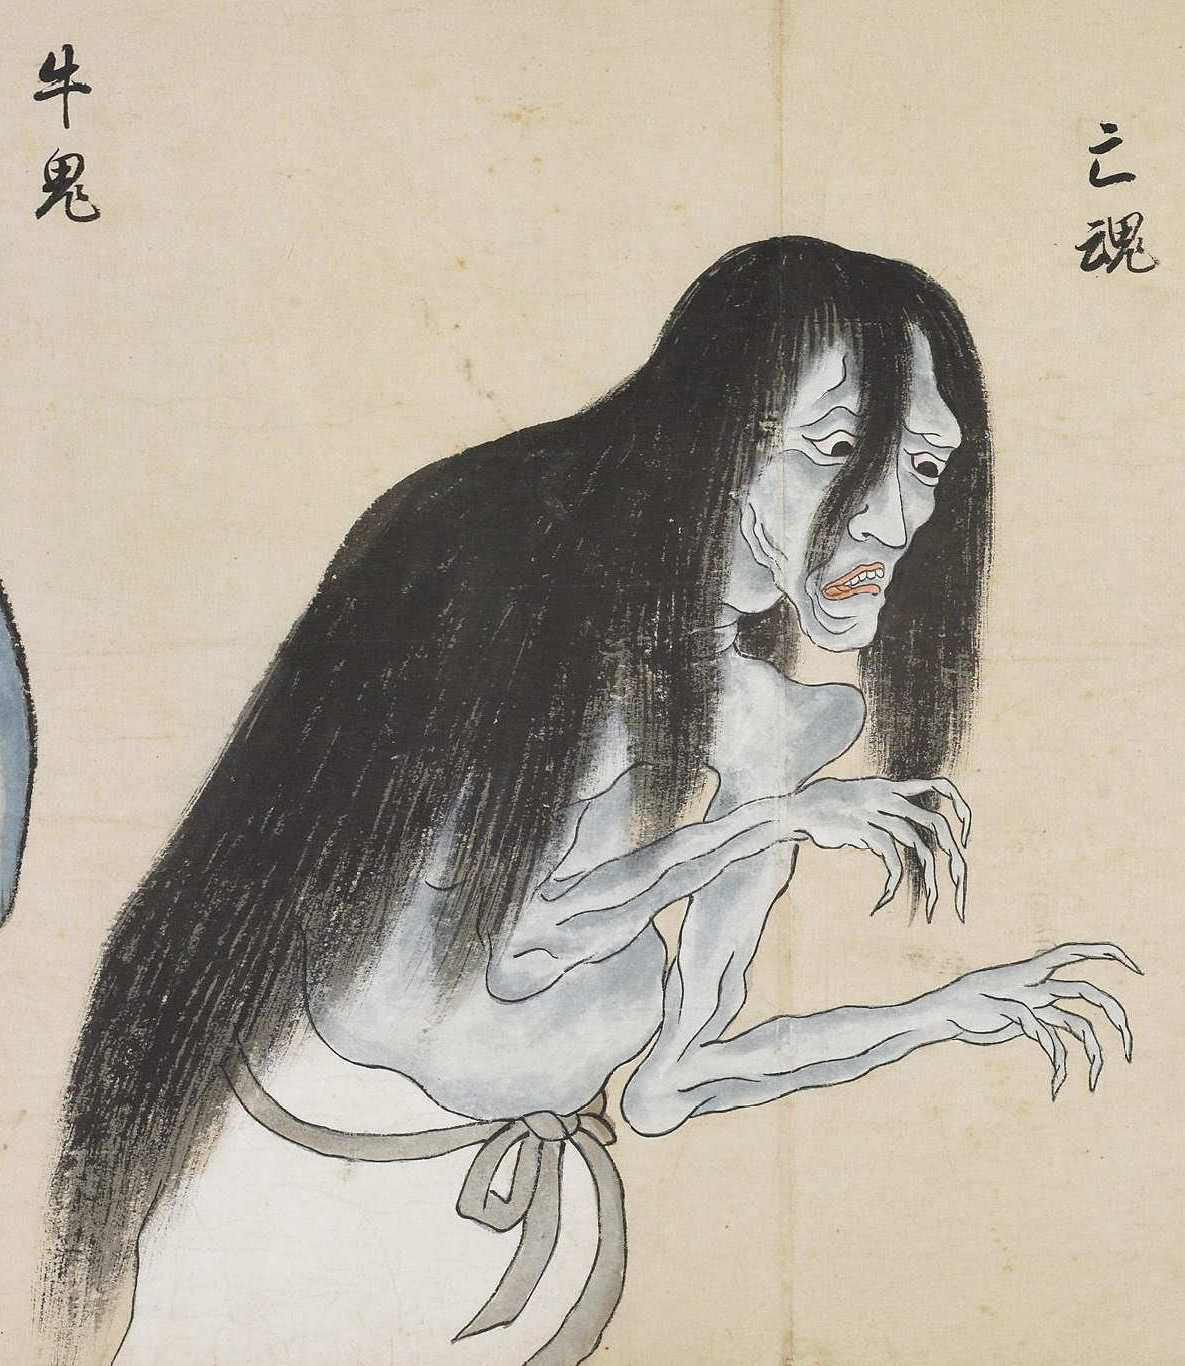 Boukon (亡魂), a departed soul, appears to have pale blue skin, long hair, and a distended belly yokai